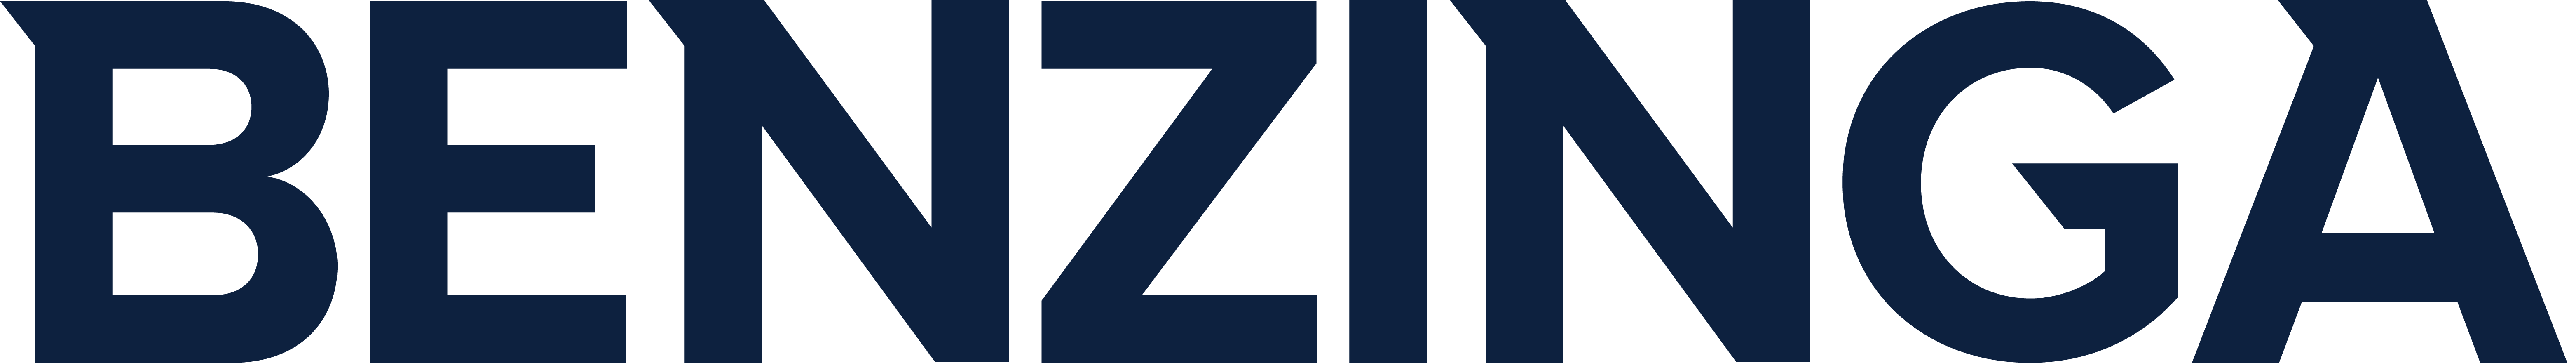 Hillorie Le featured on Benzinga